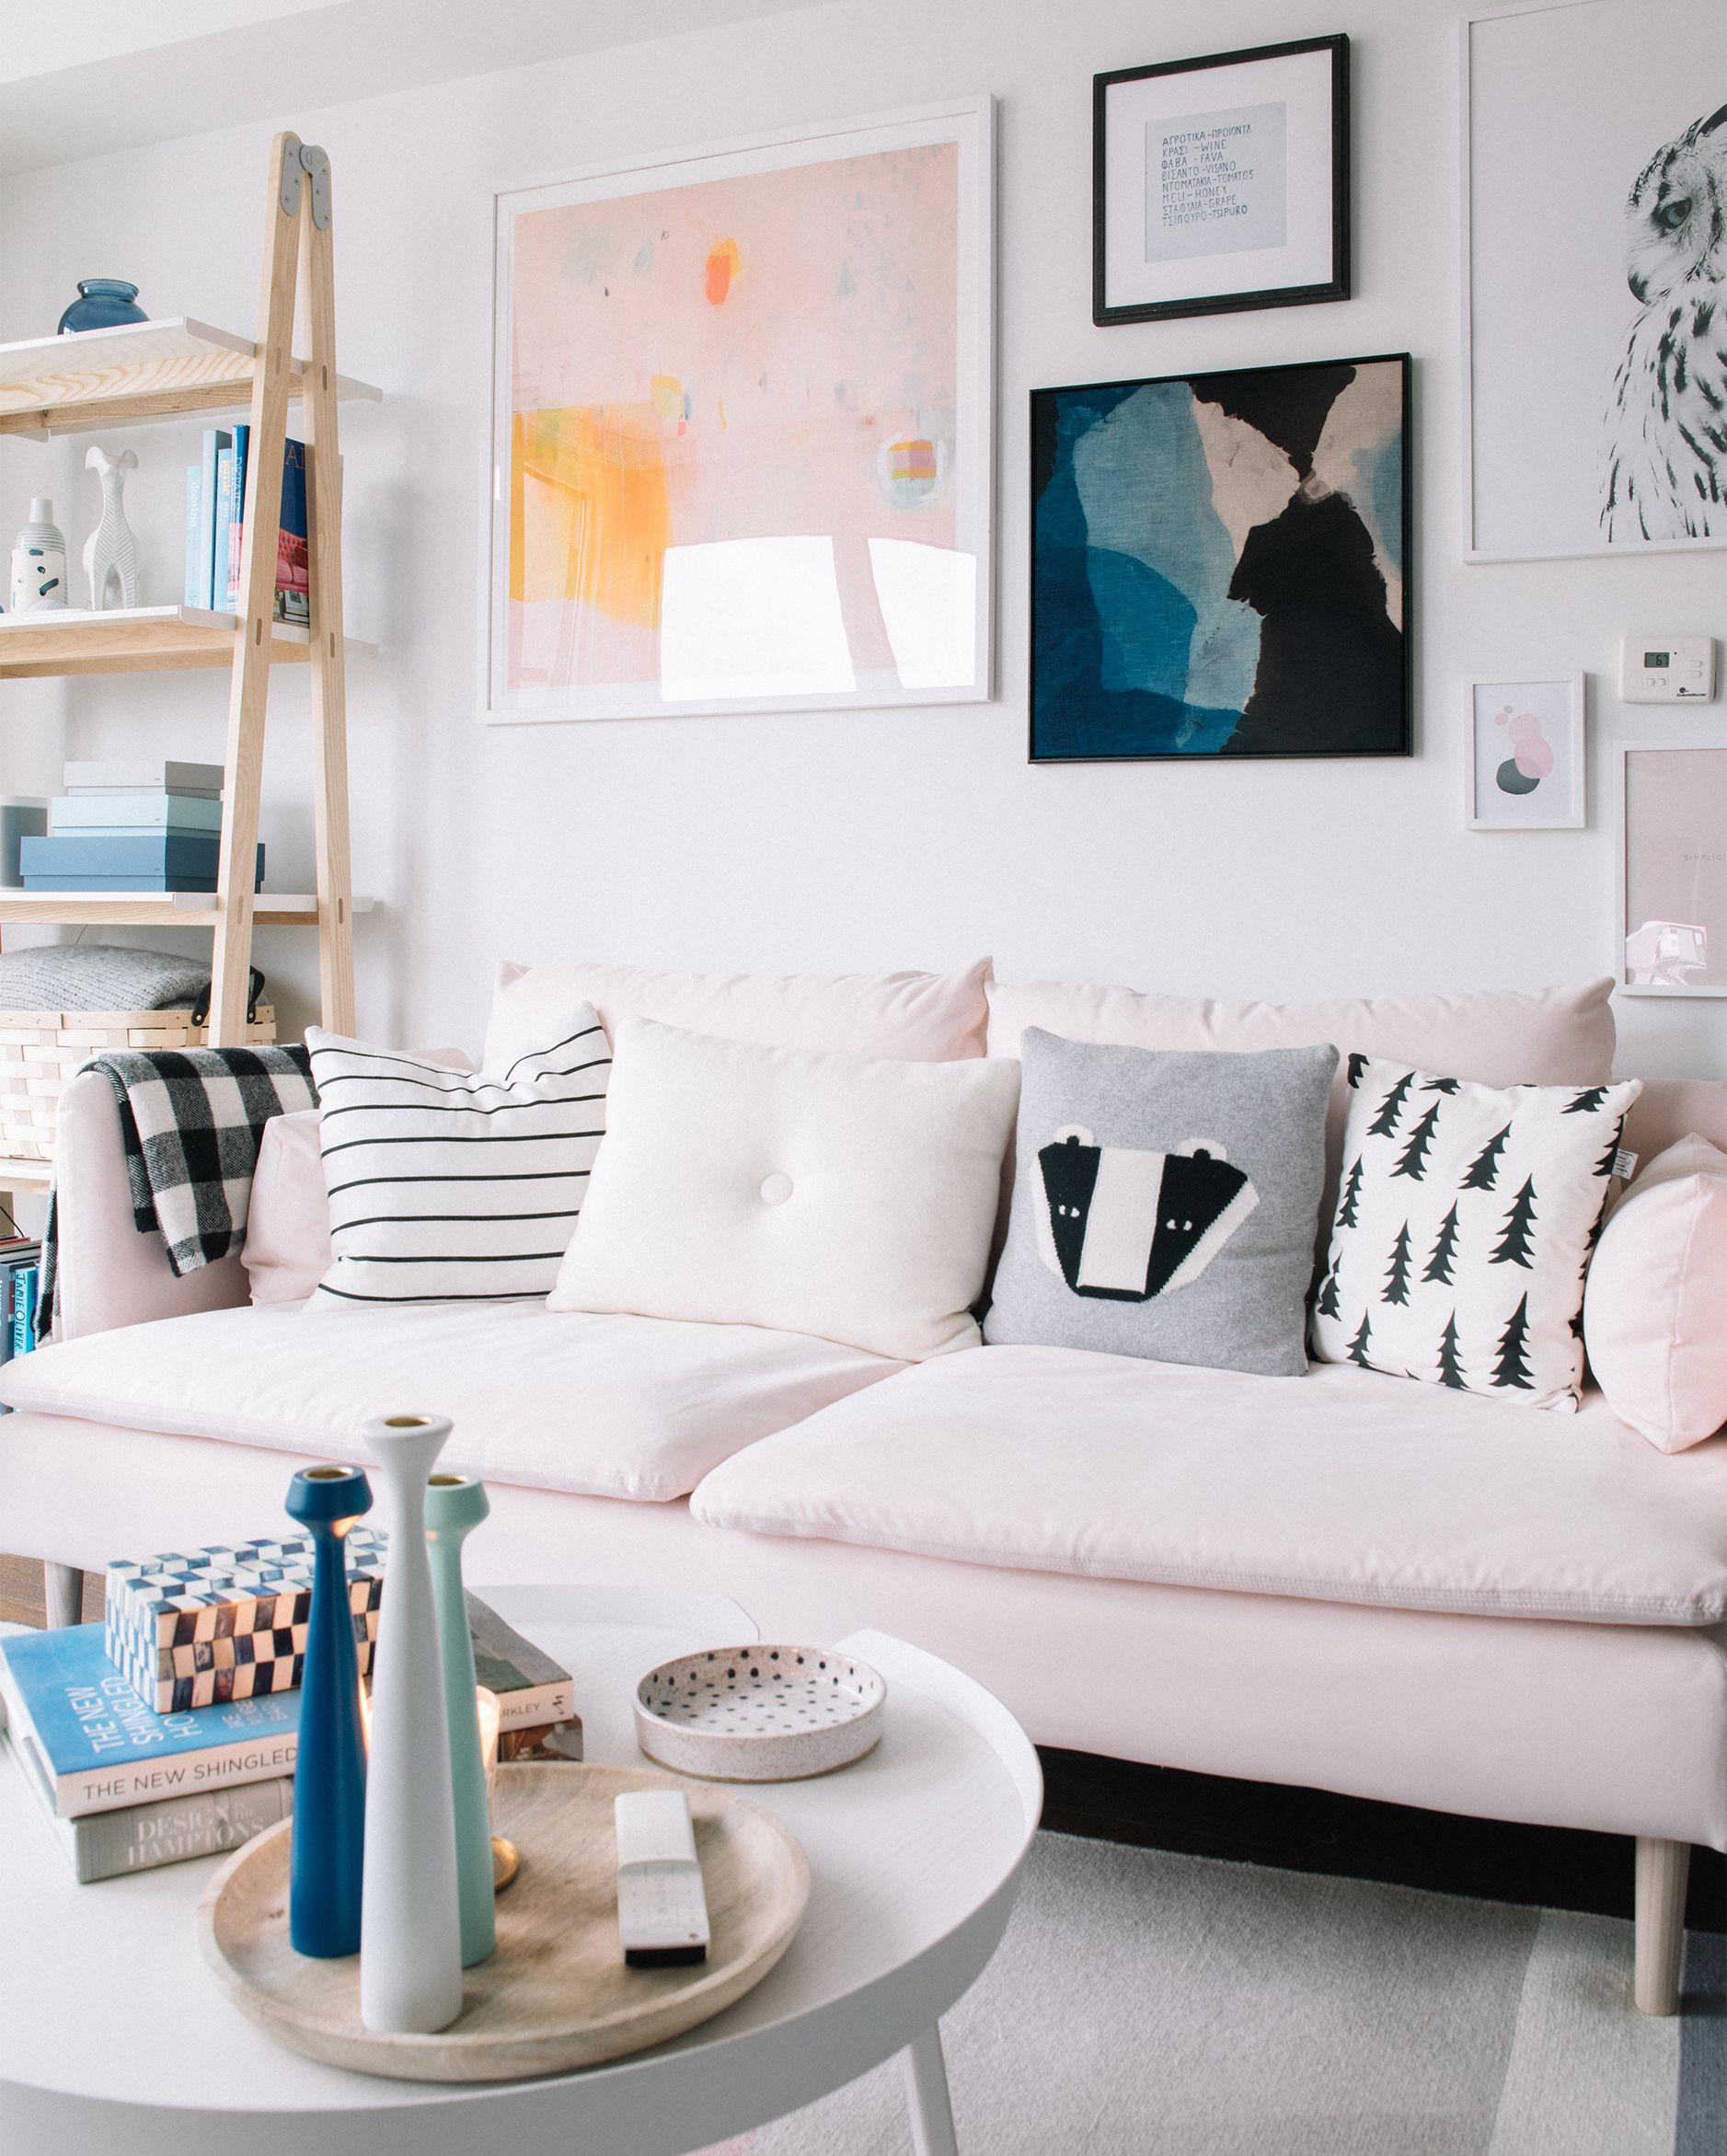 Millennial Pink Decorating Ideas From My Living Room